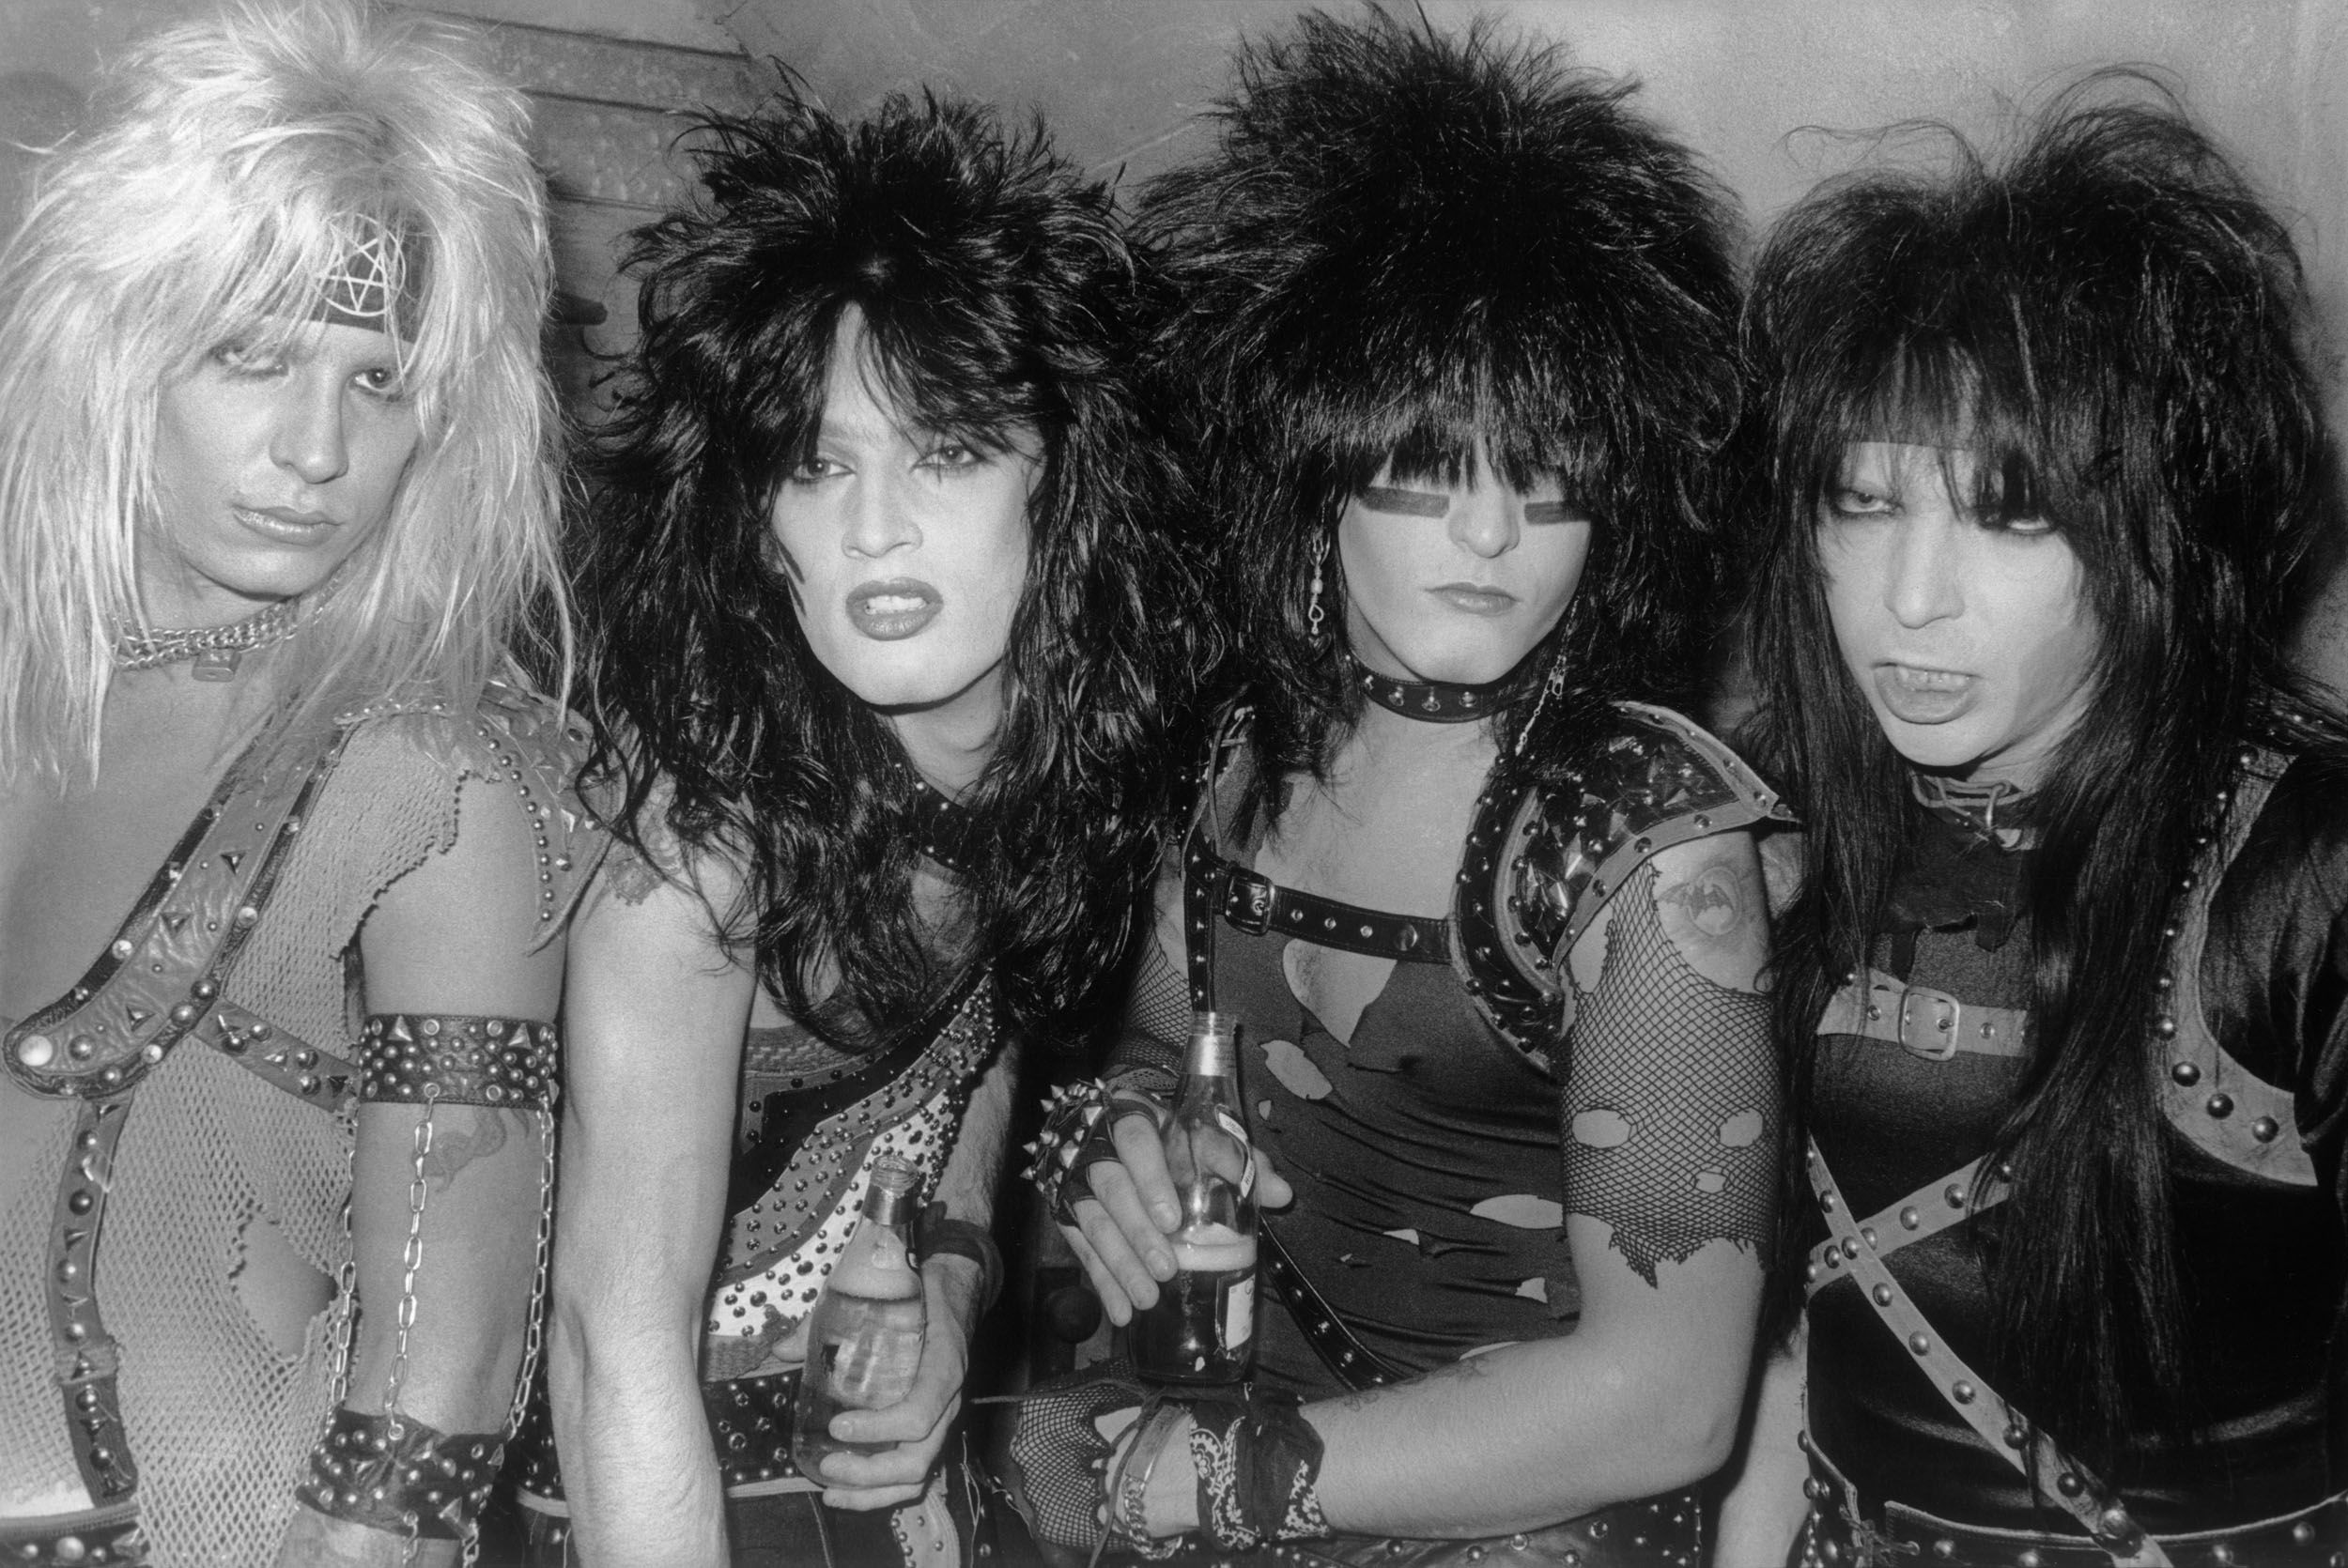 Mötley Crüe photographed in 1983.